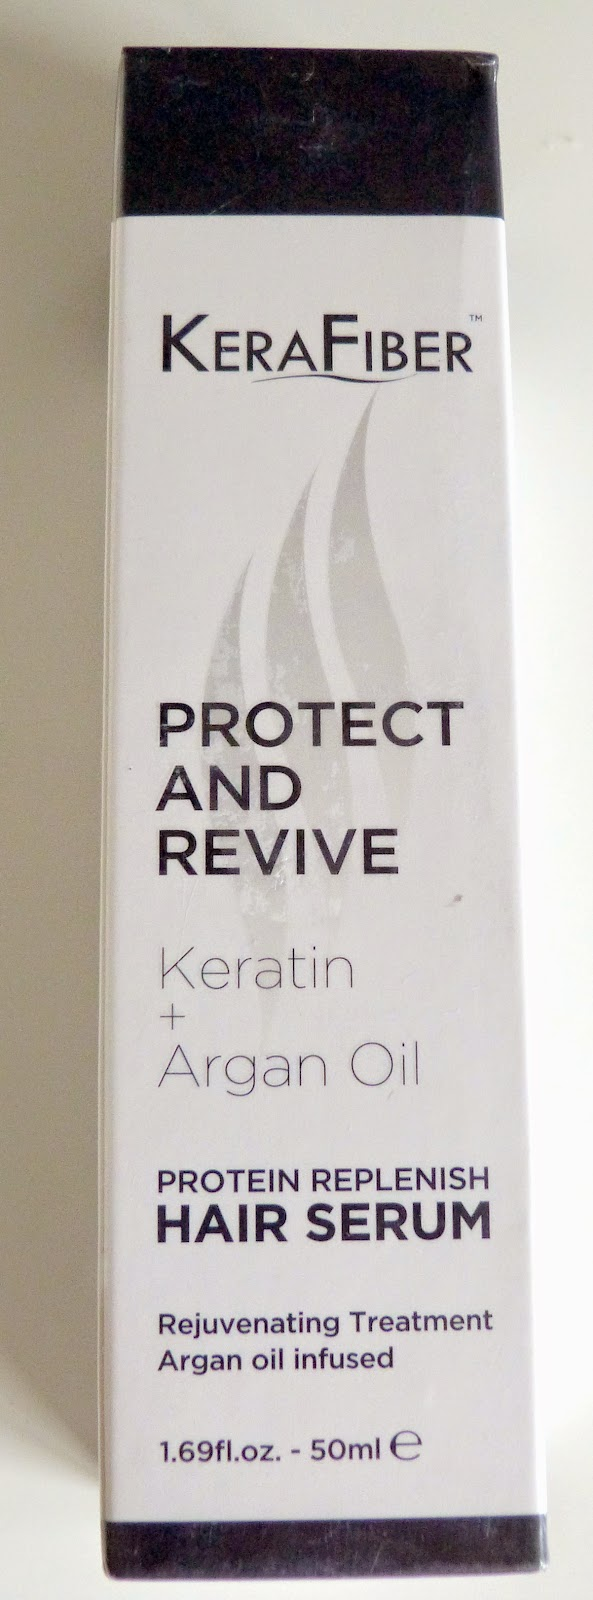 KeraFiber Keratin and Argan Oil